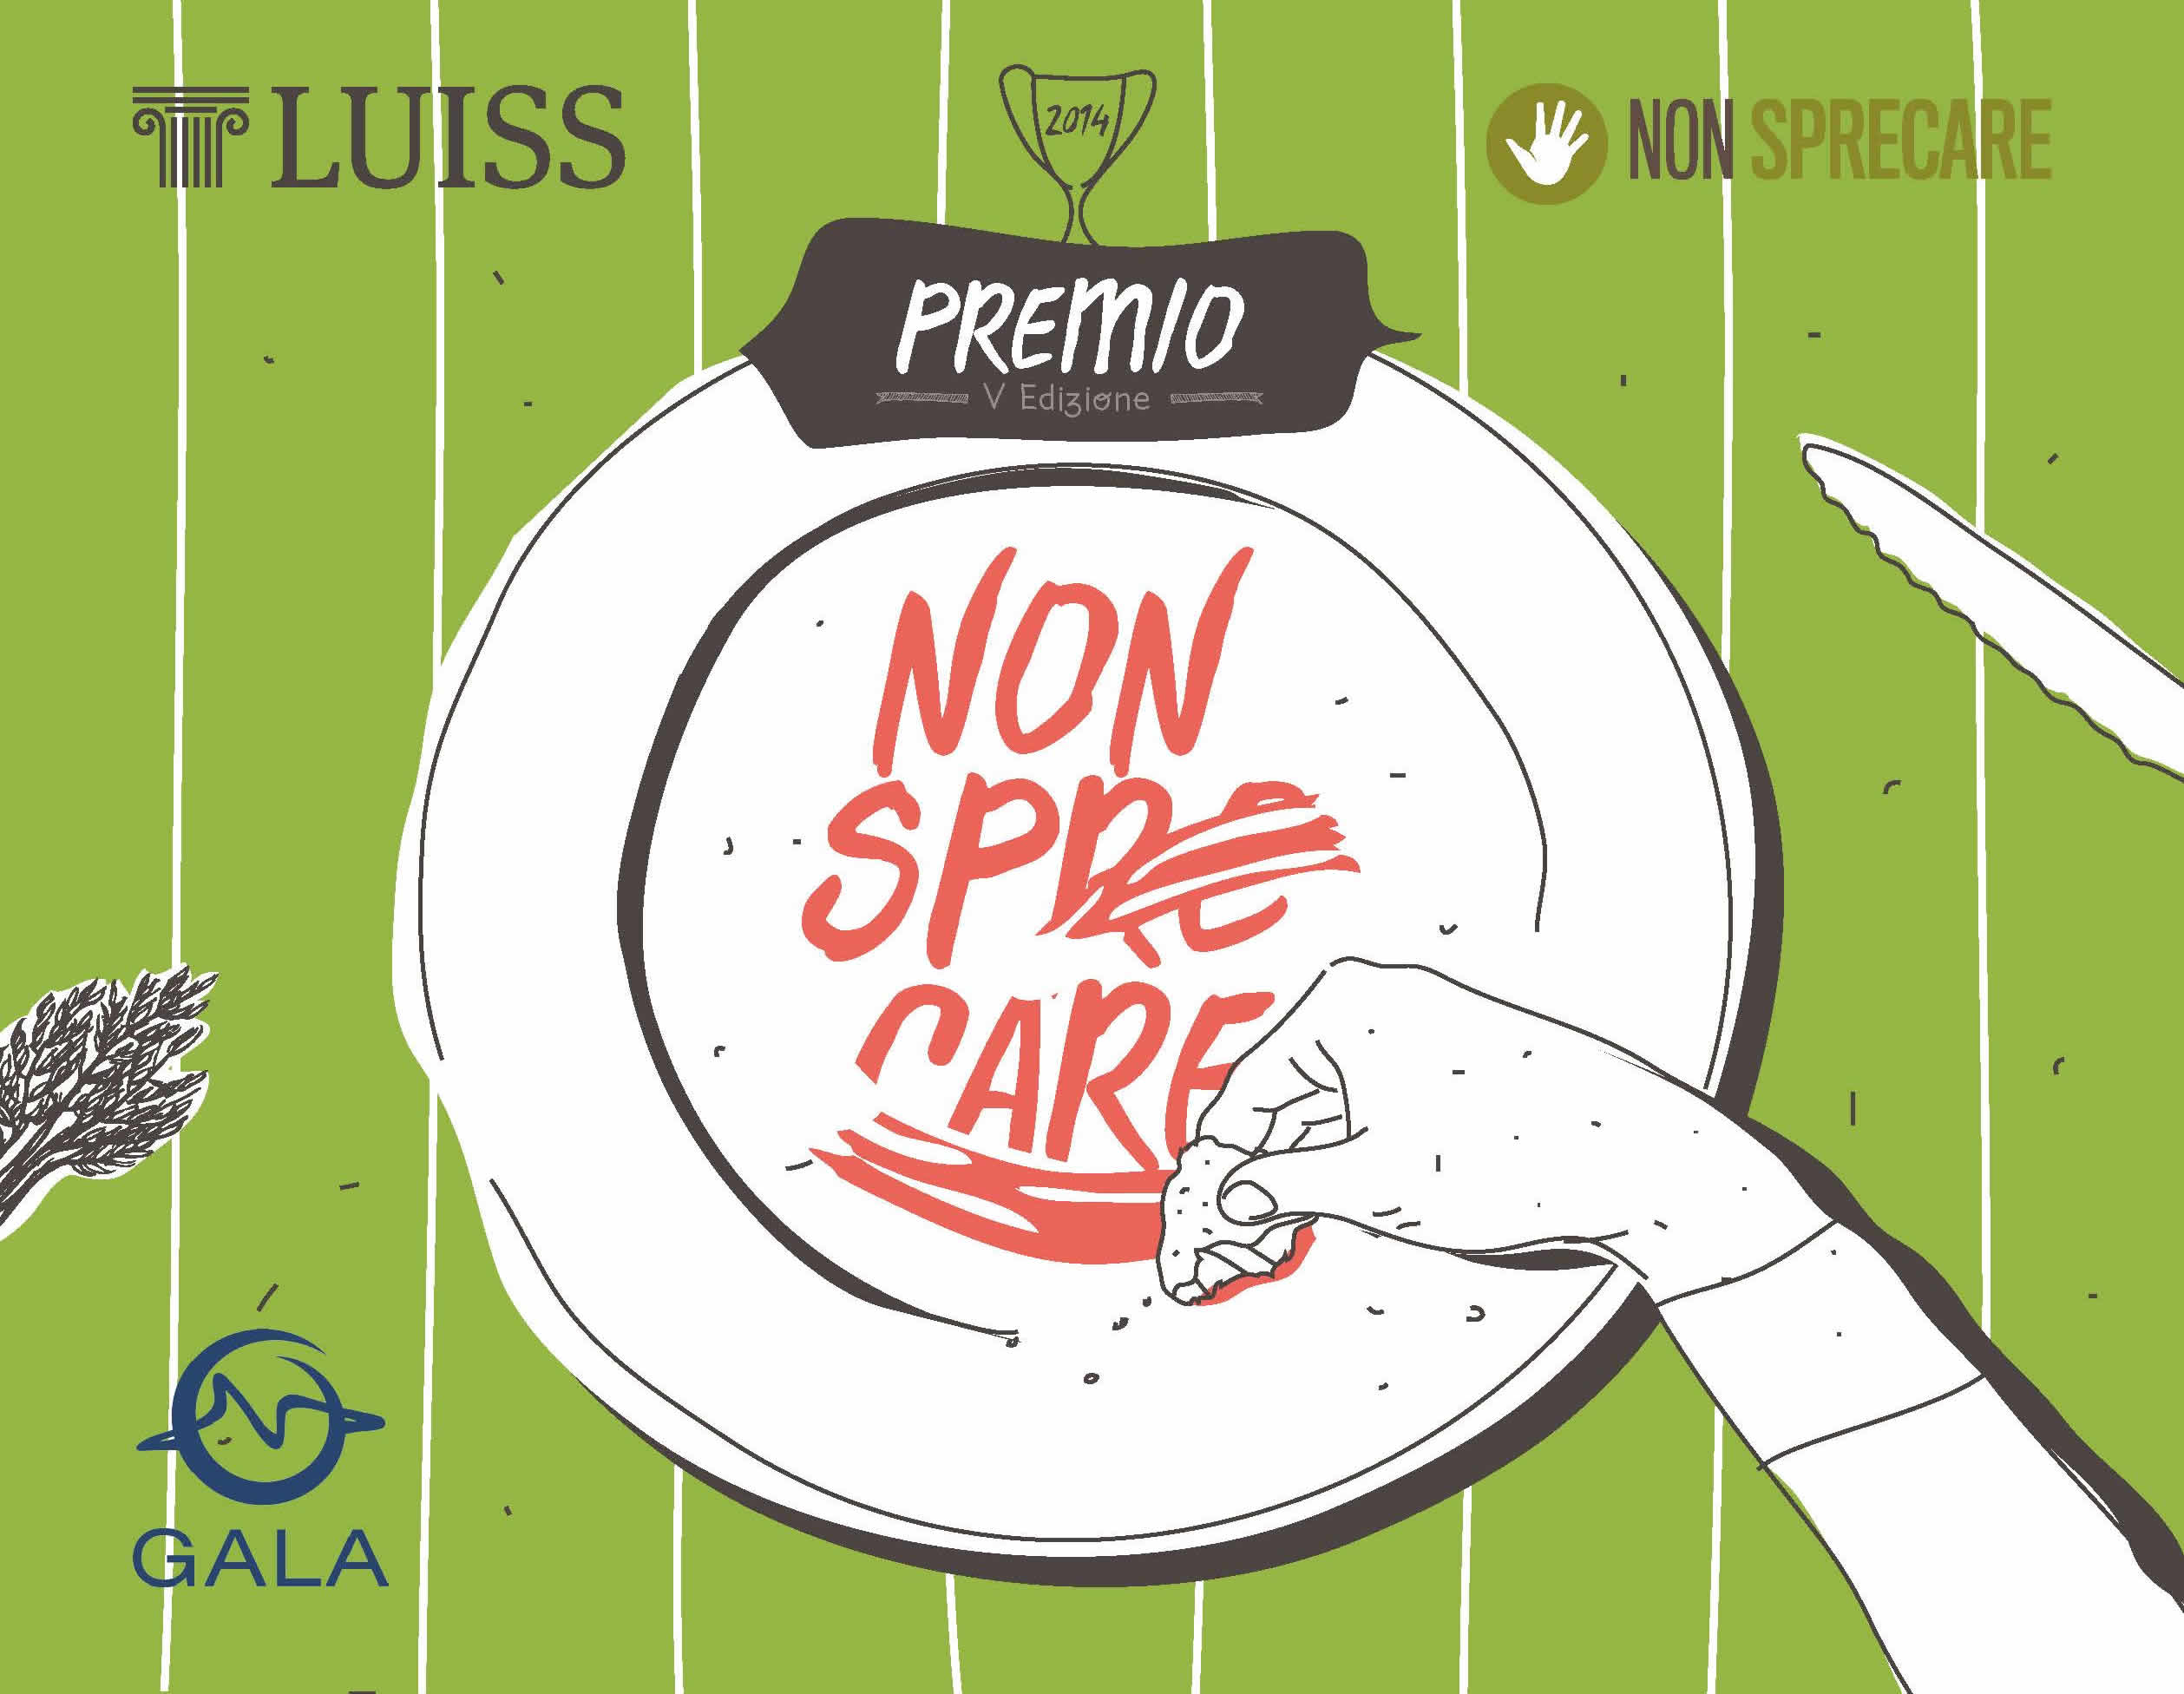 nonsprecare2014